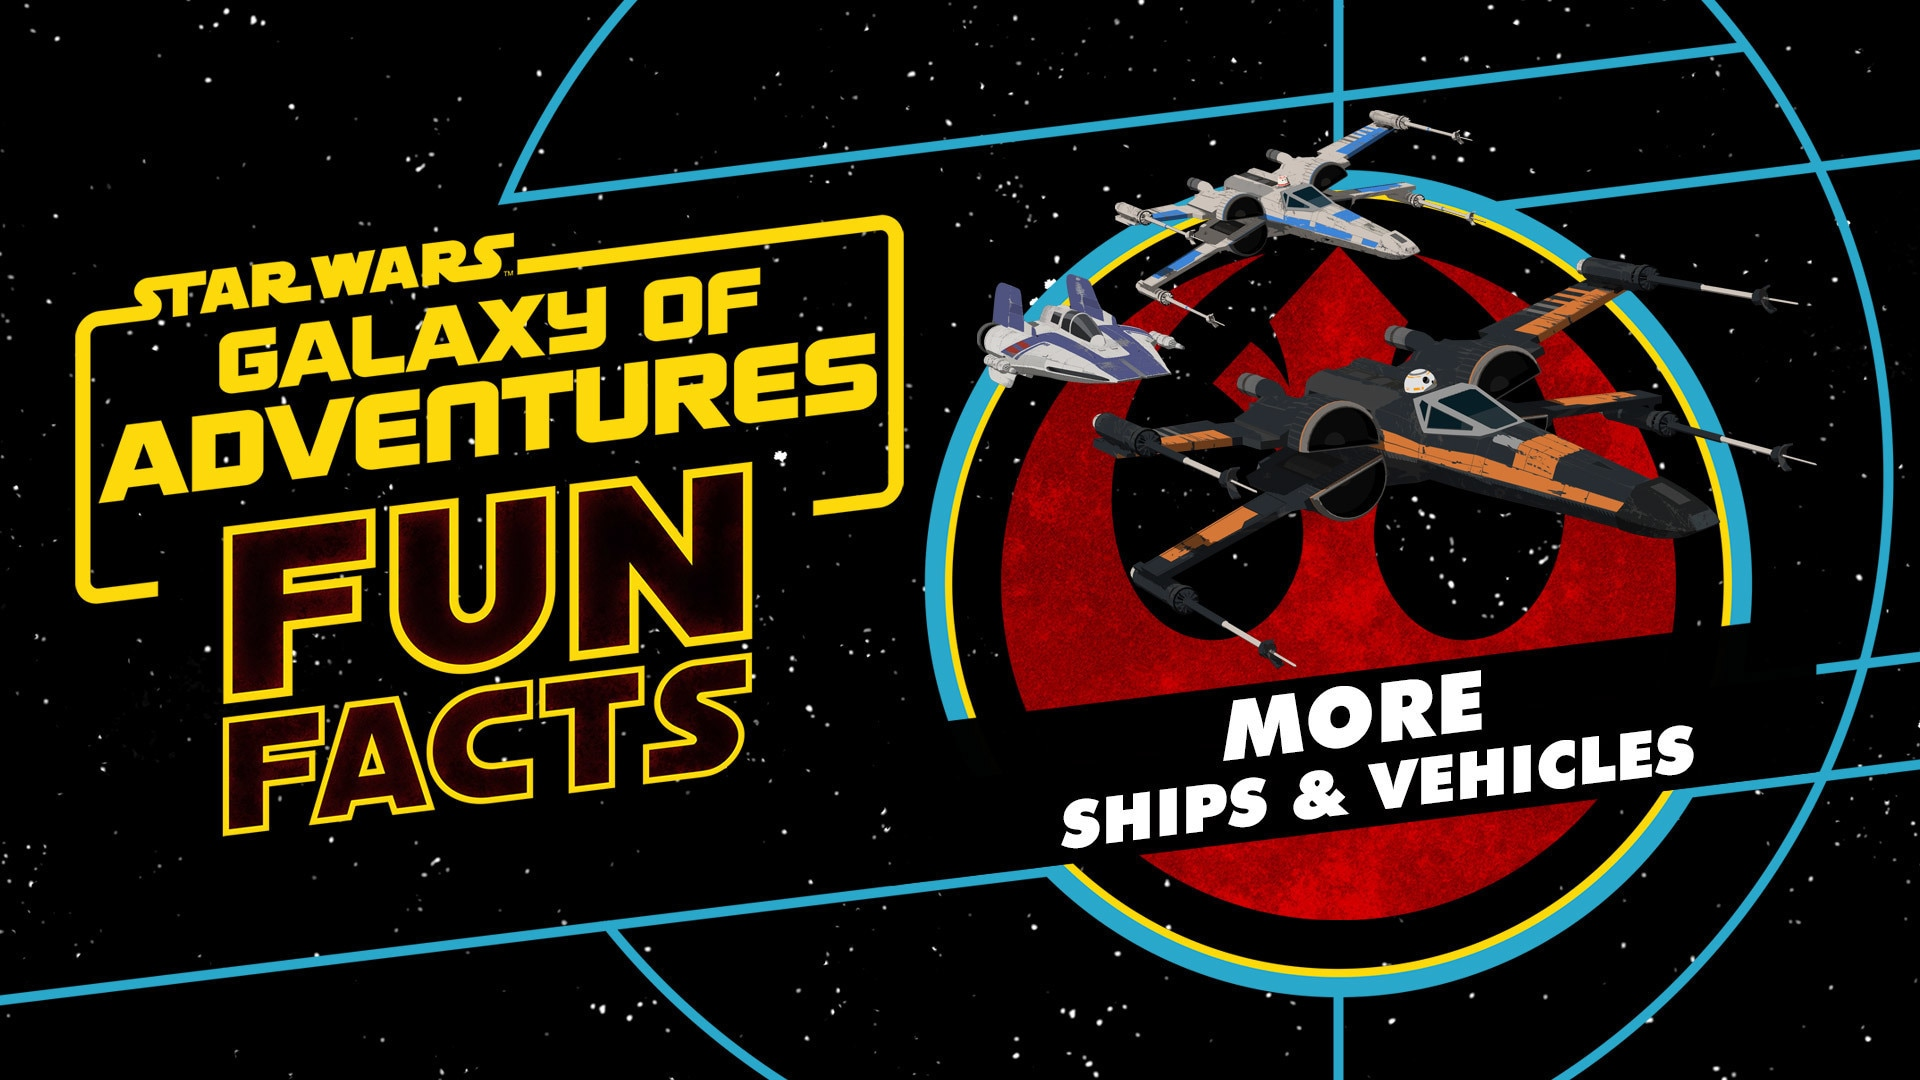 Resistance and First Order Ships and Vehicles | Star Wars Galaxy of Adventures Fun Facts